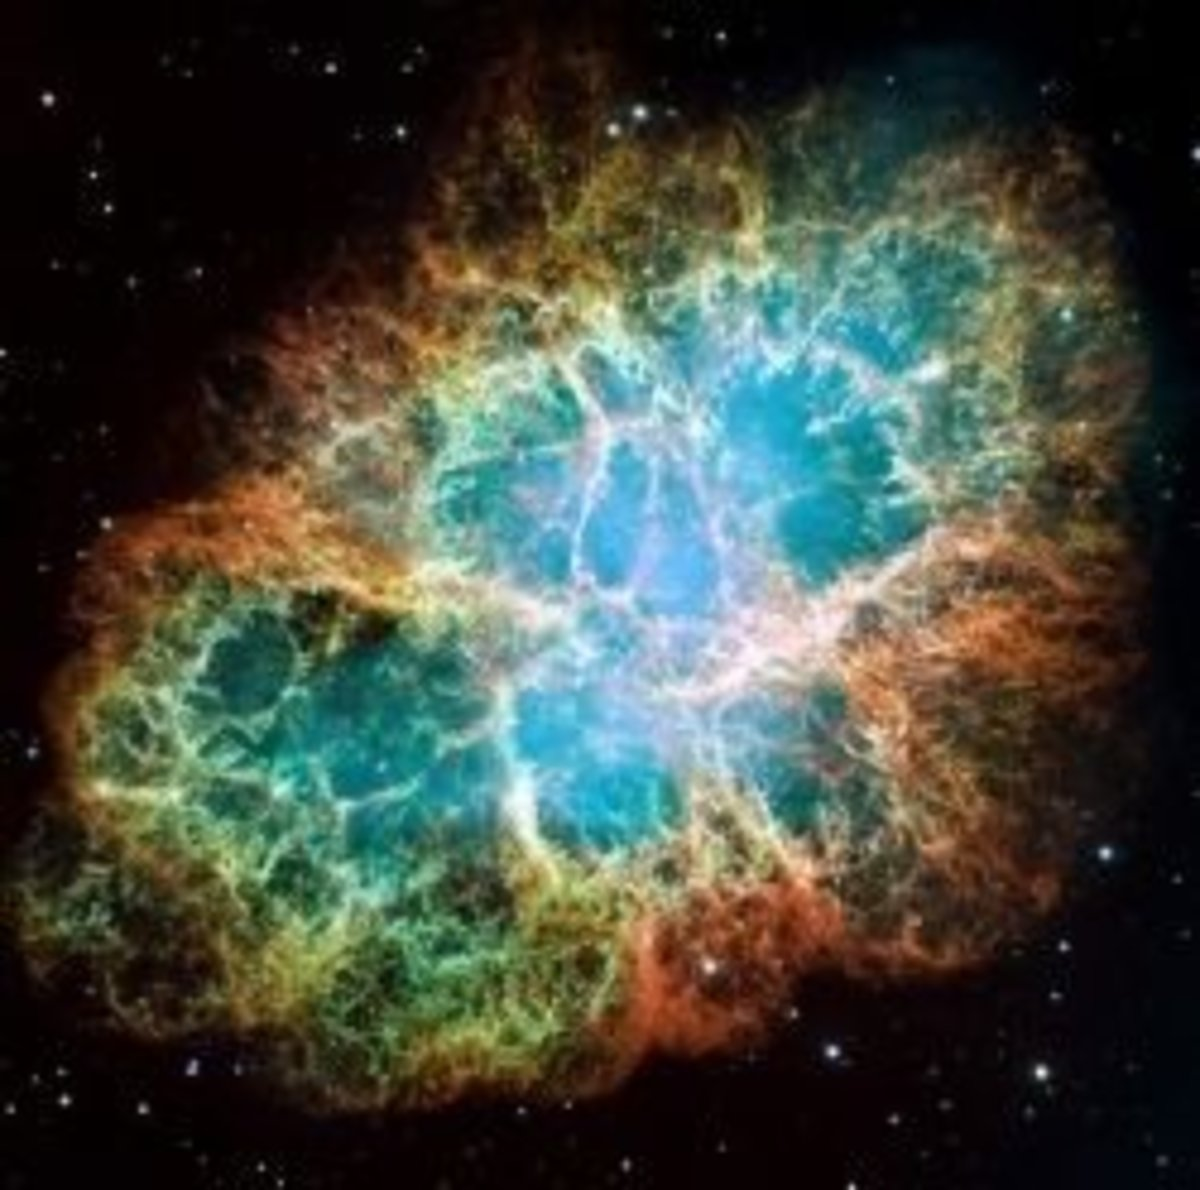 image of the Crab Nebula by NASA and ESA